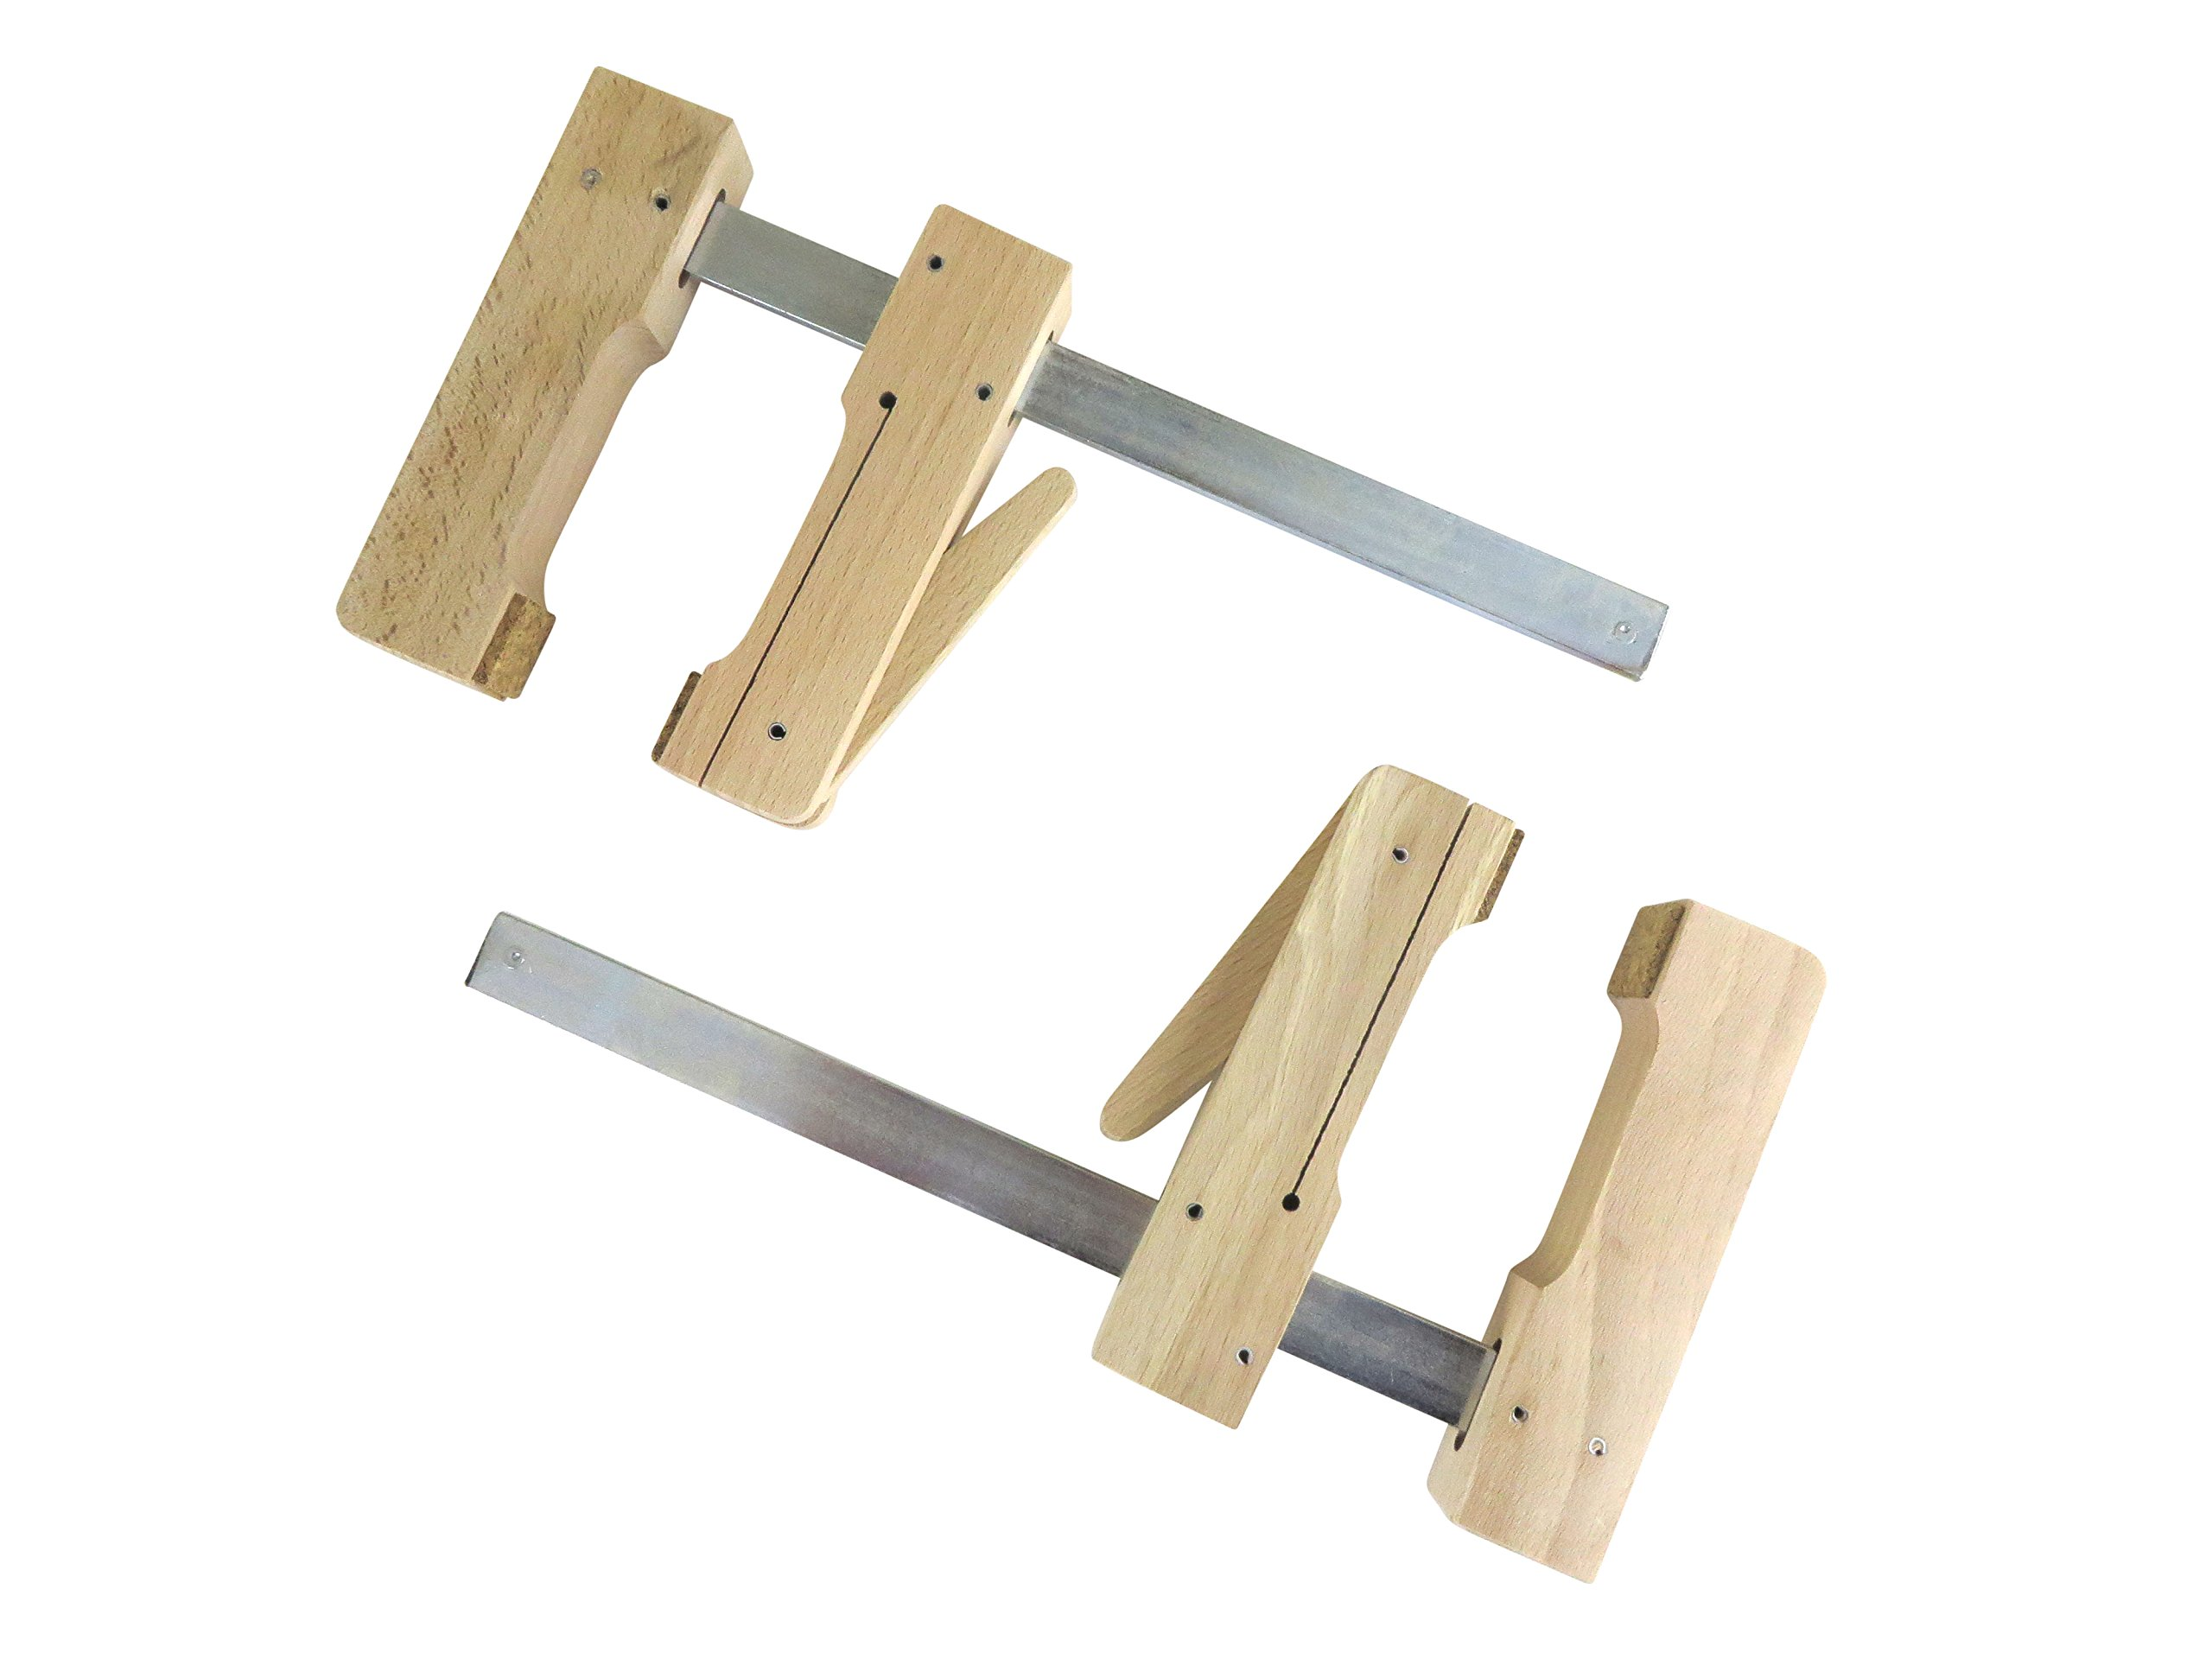 "2 each Pair Taytools 30-200 Wooden Wood Cam Action Clamps 7-1/2"" Opening by 4-1/4"" Depth European Beech"